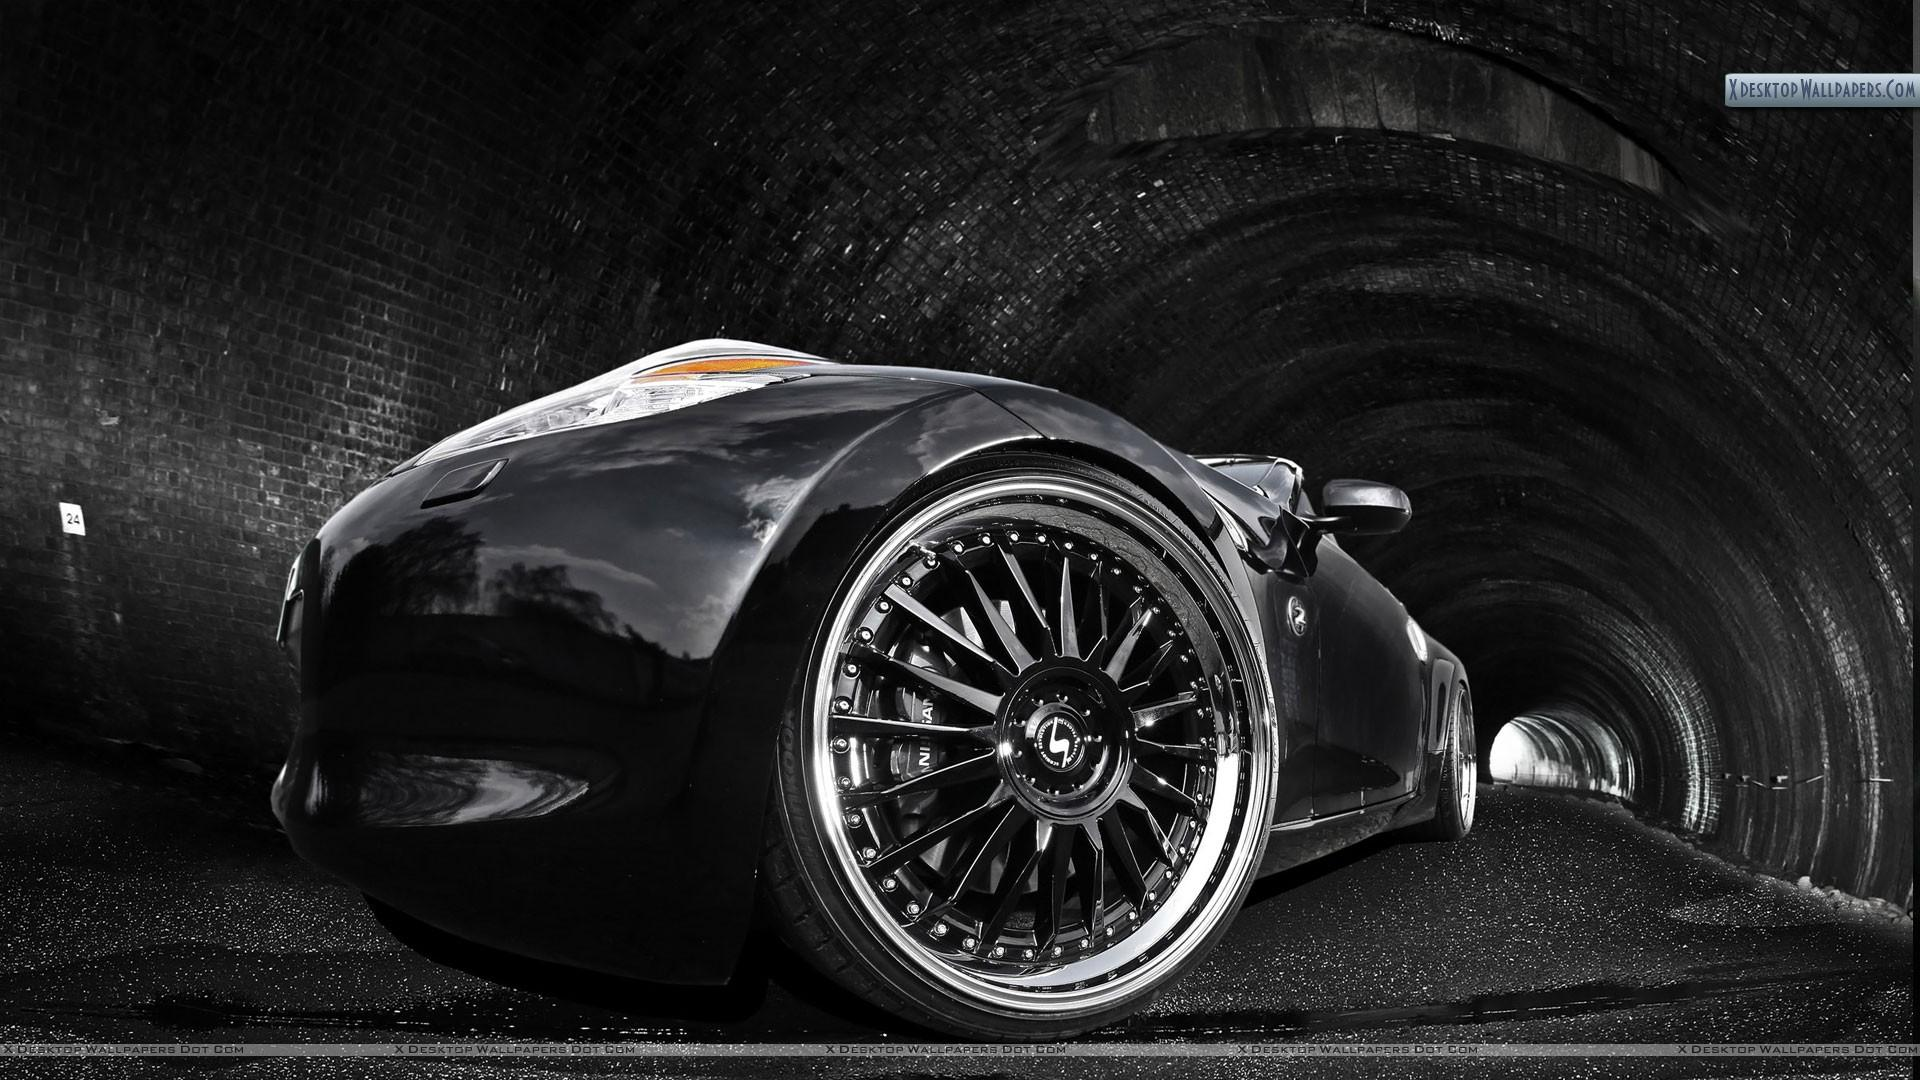 Alloy Wheels Wallpapers, Photos & Image in HD